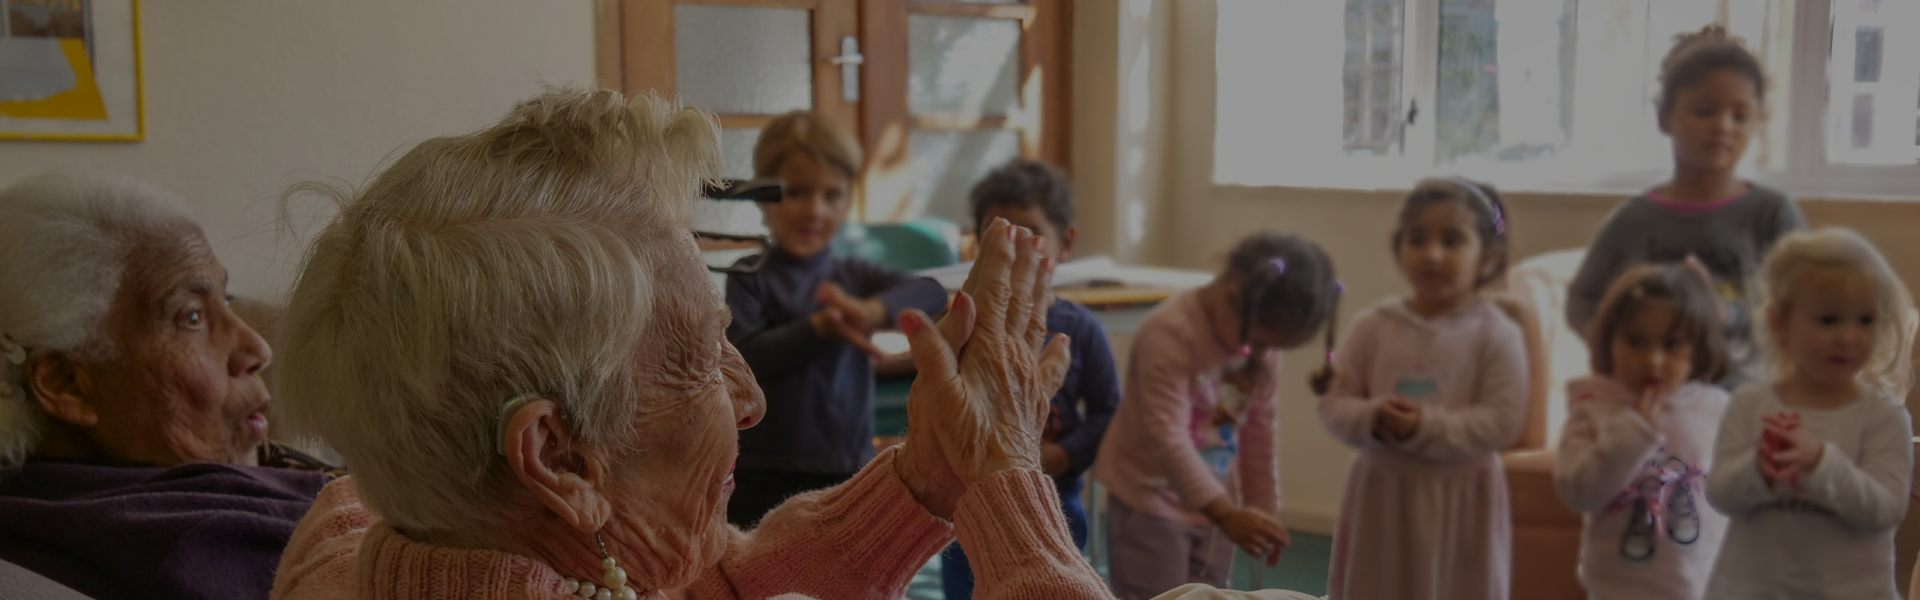 elderly woman playing with children